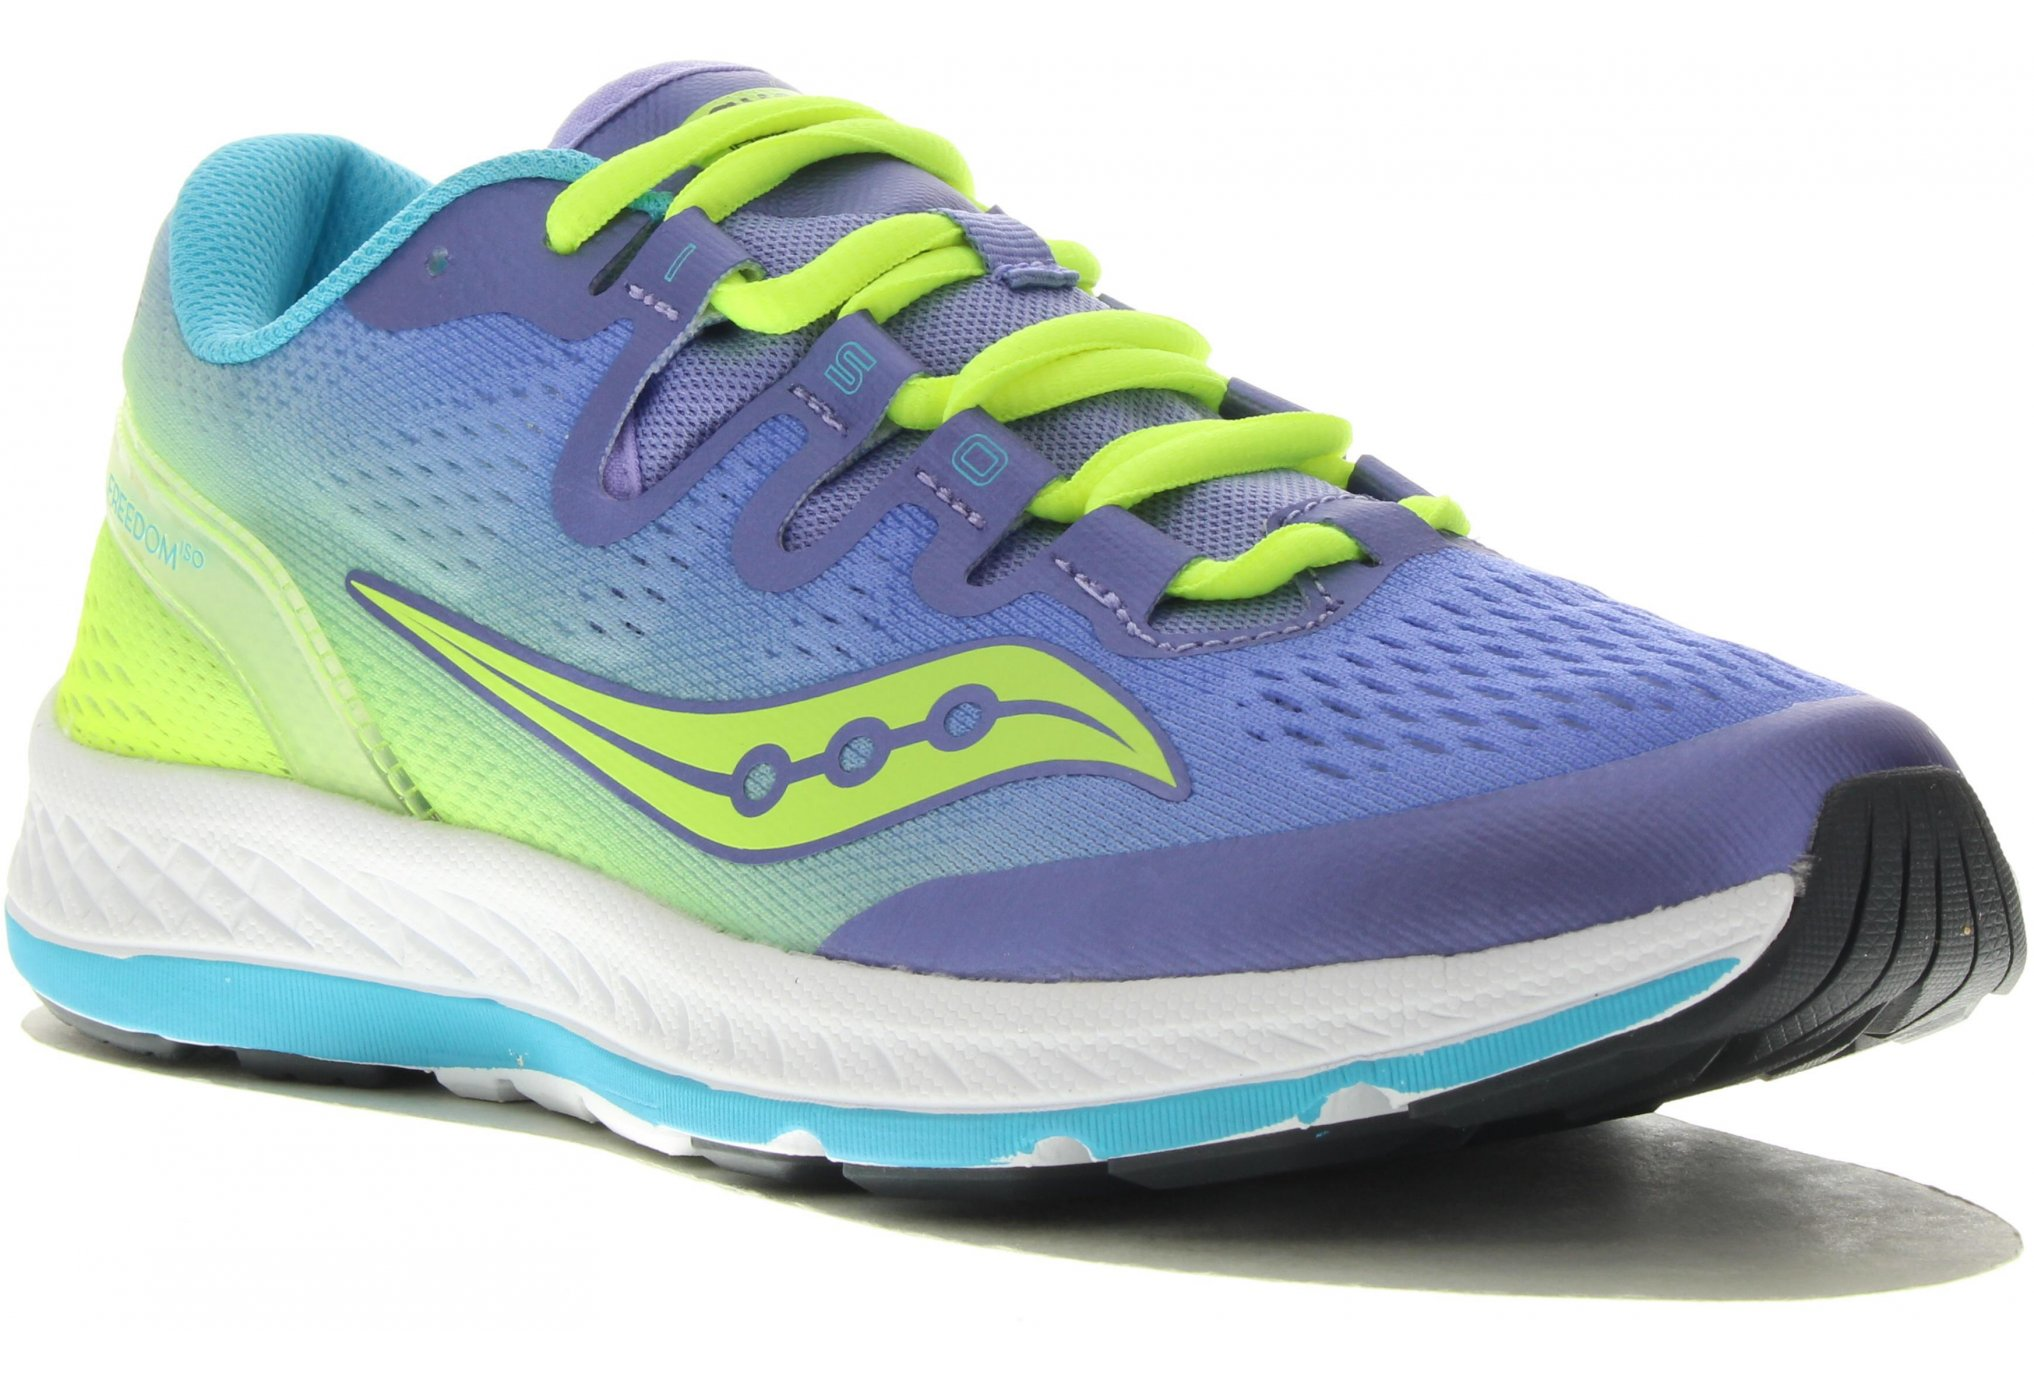 Saucony Freedom ISO Fille Chaussures running femme